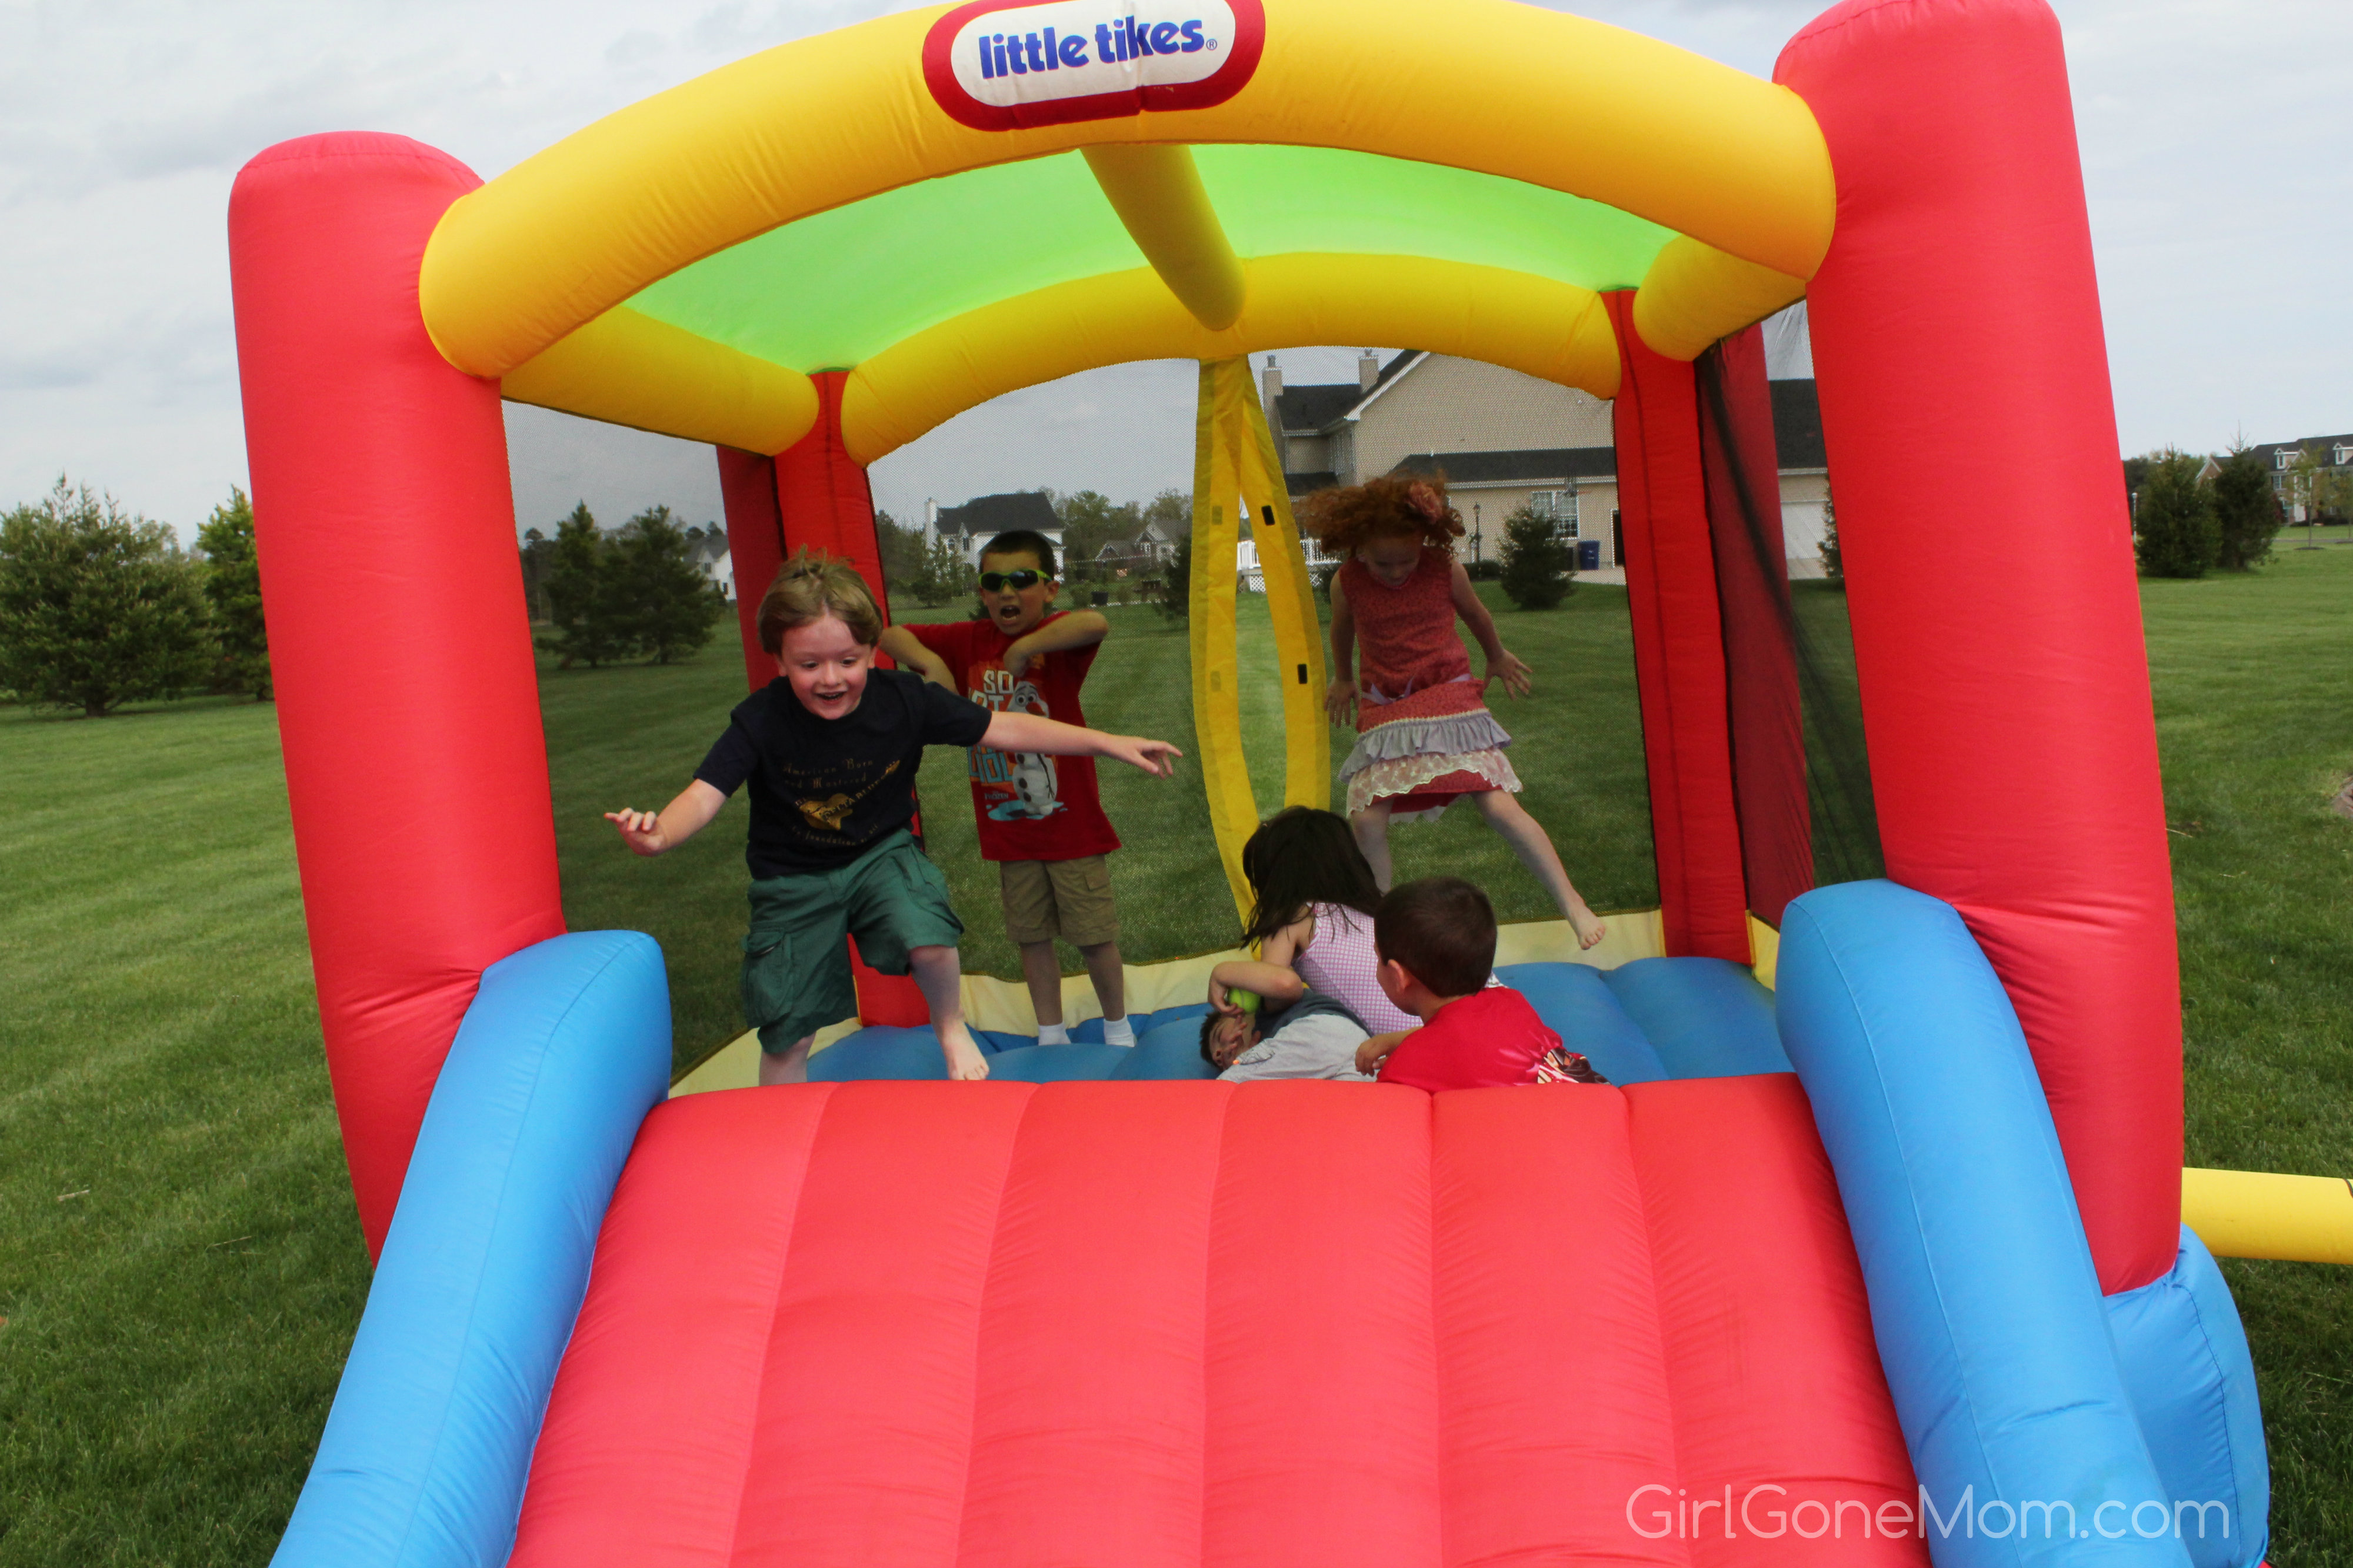 Pretty Little Tikes Bounce House Made Of Caoutchouc With Slide For Play Yard Ideas